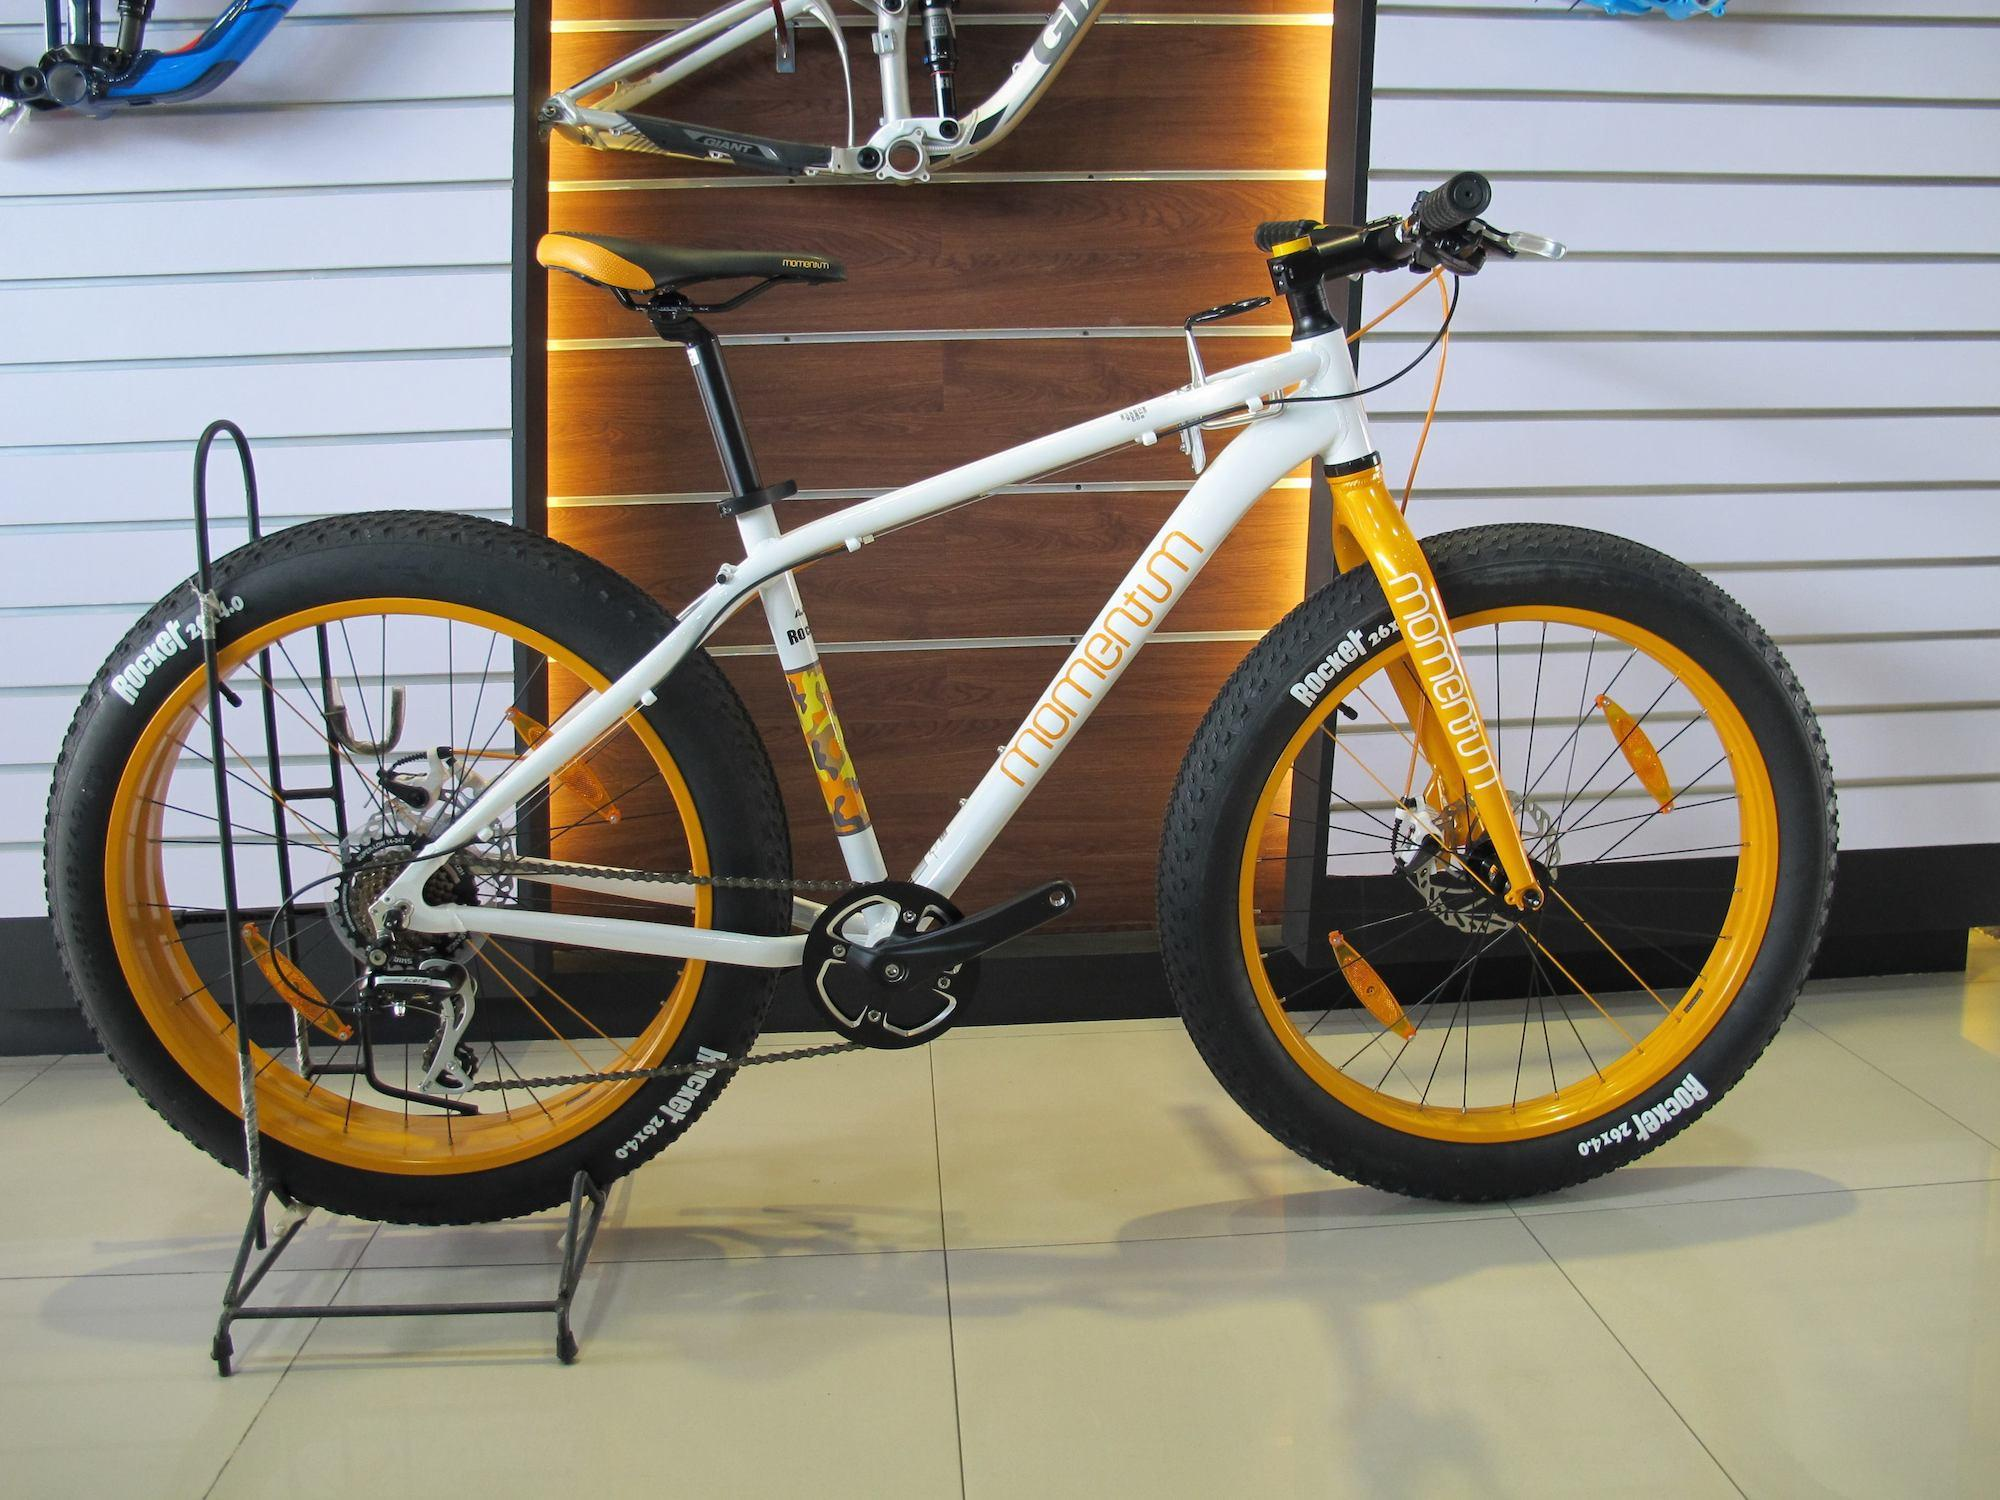 Giant Philippines Mountain Bike For Sale Prices Reviews Frame Anthem 275 Blue Orange 2015 M Mmt Iride Rocker 3 2018 Fatbike Authentic Mtb